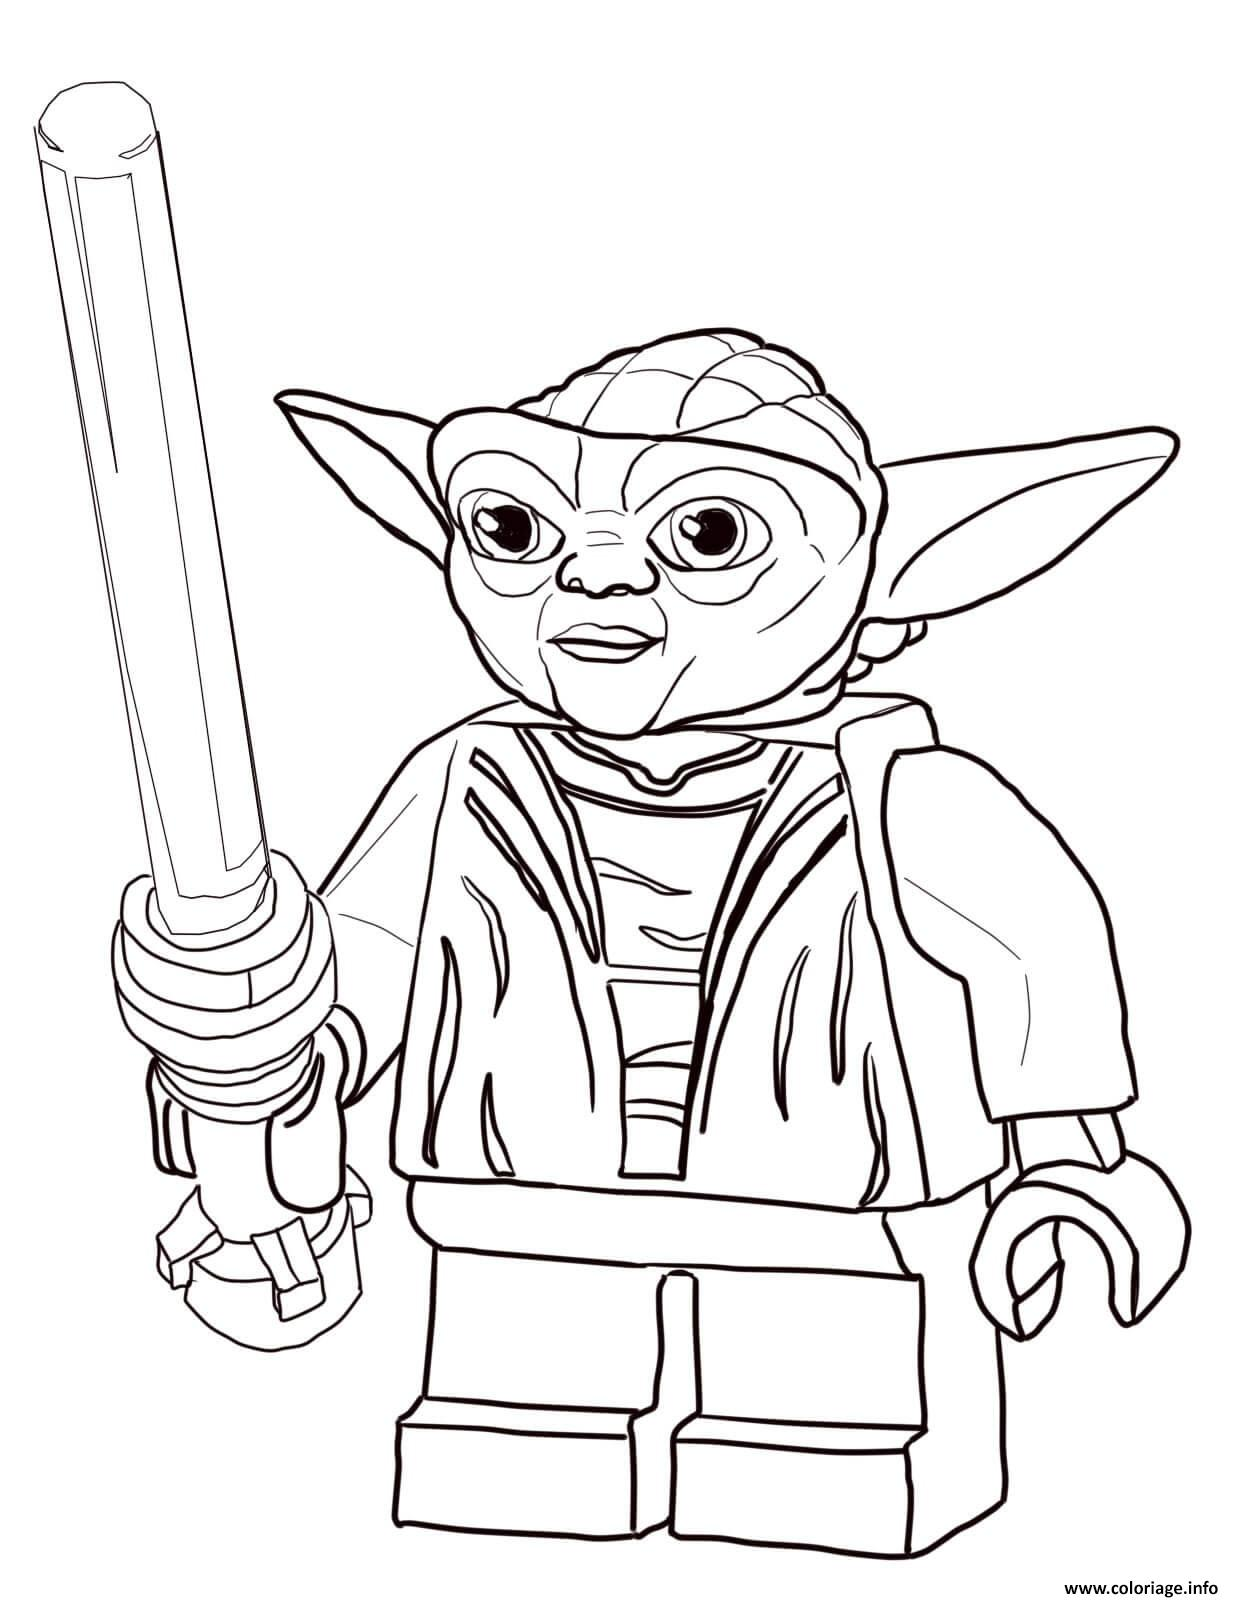 Coloriage star wars lego dessin - Star wars gratuit ...